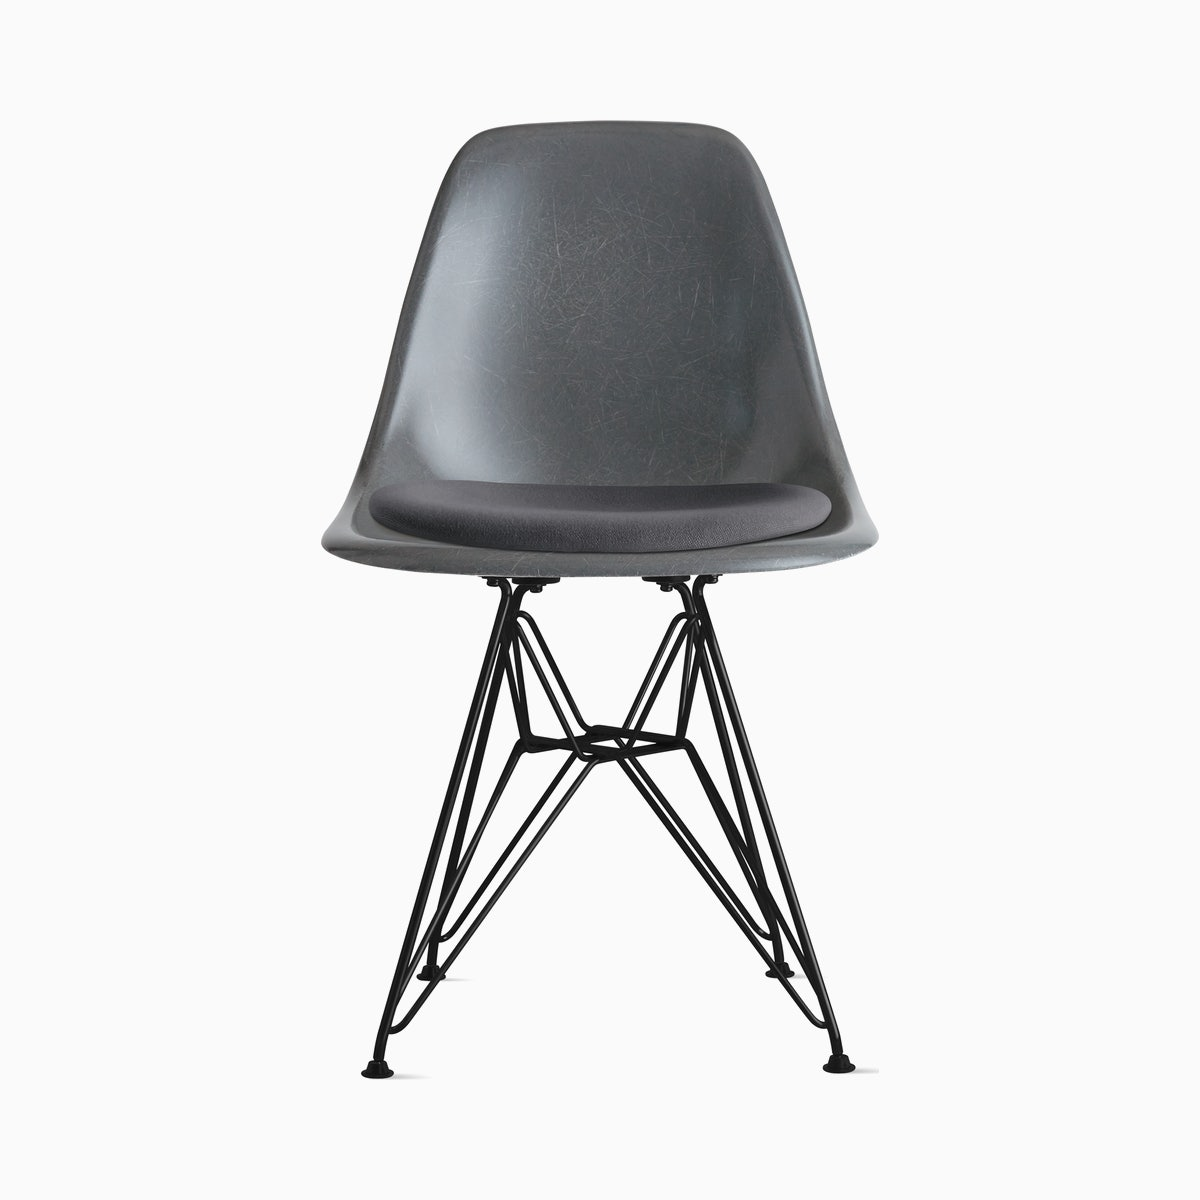 Eames Molded Fiberglass Side Chair with Seat Pad